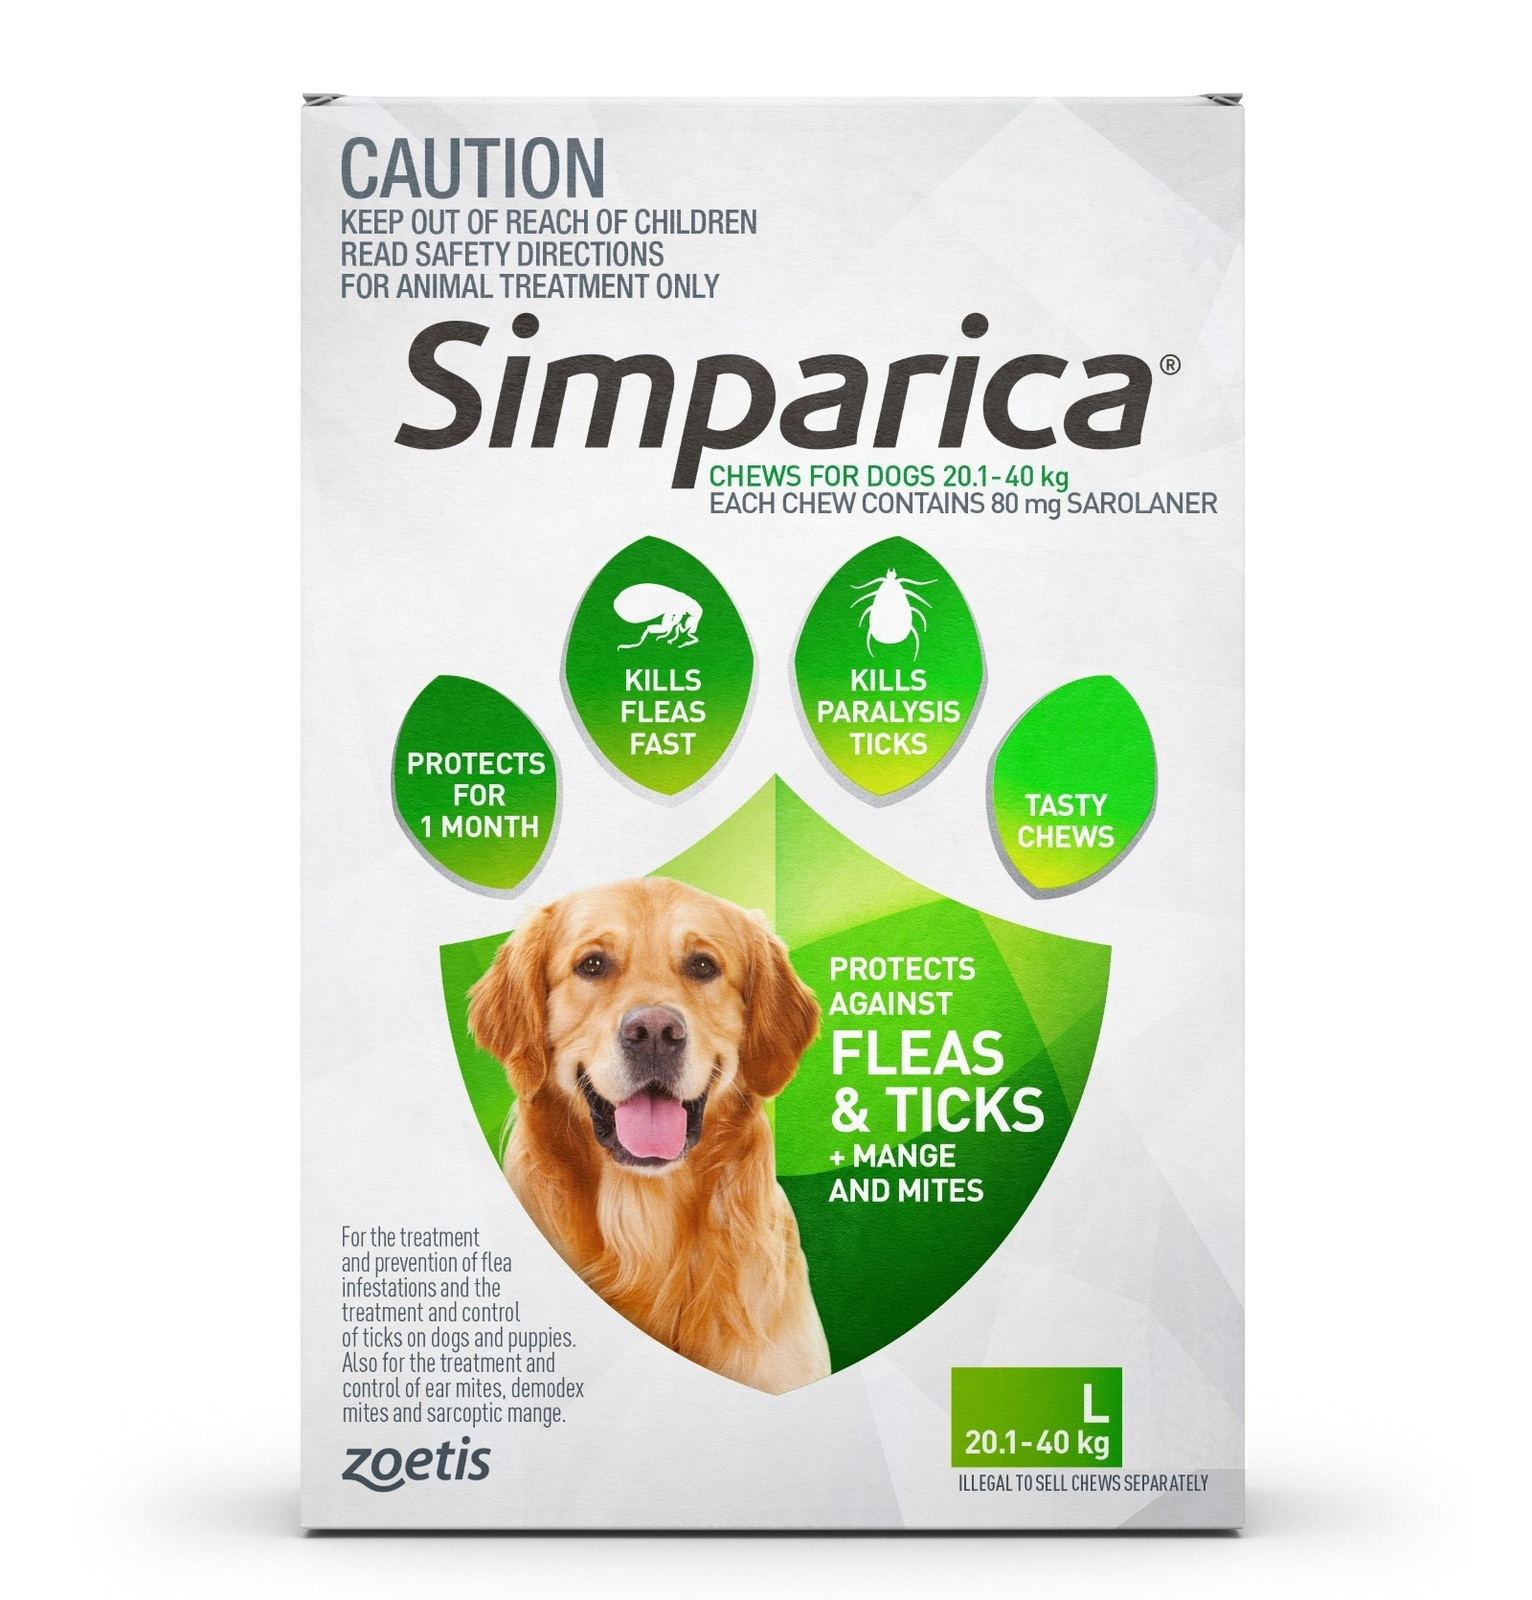 Simparica Flea Amp Tick Tablets Green For Dogs 20 1 40kgs